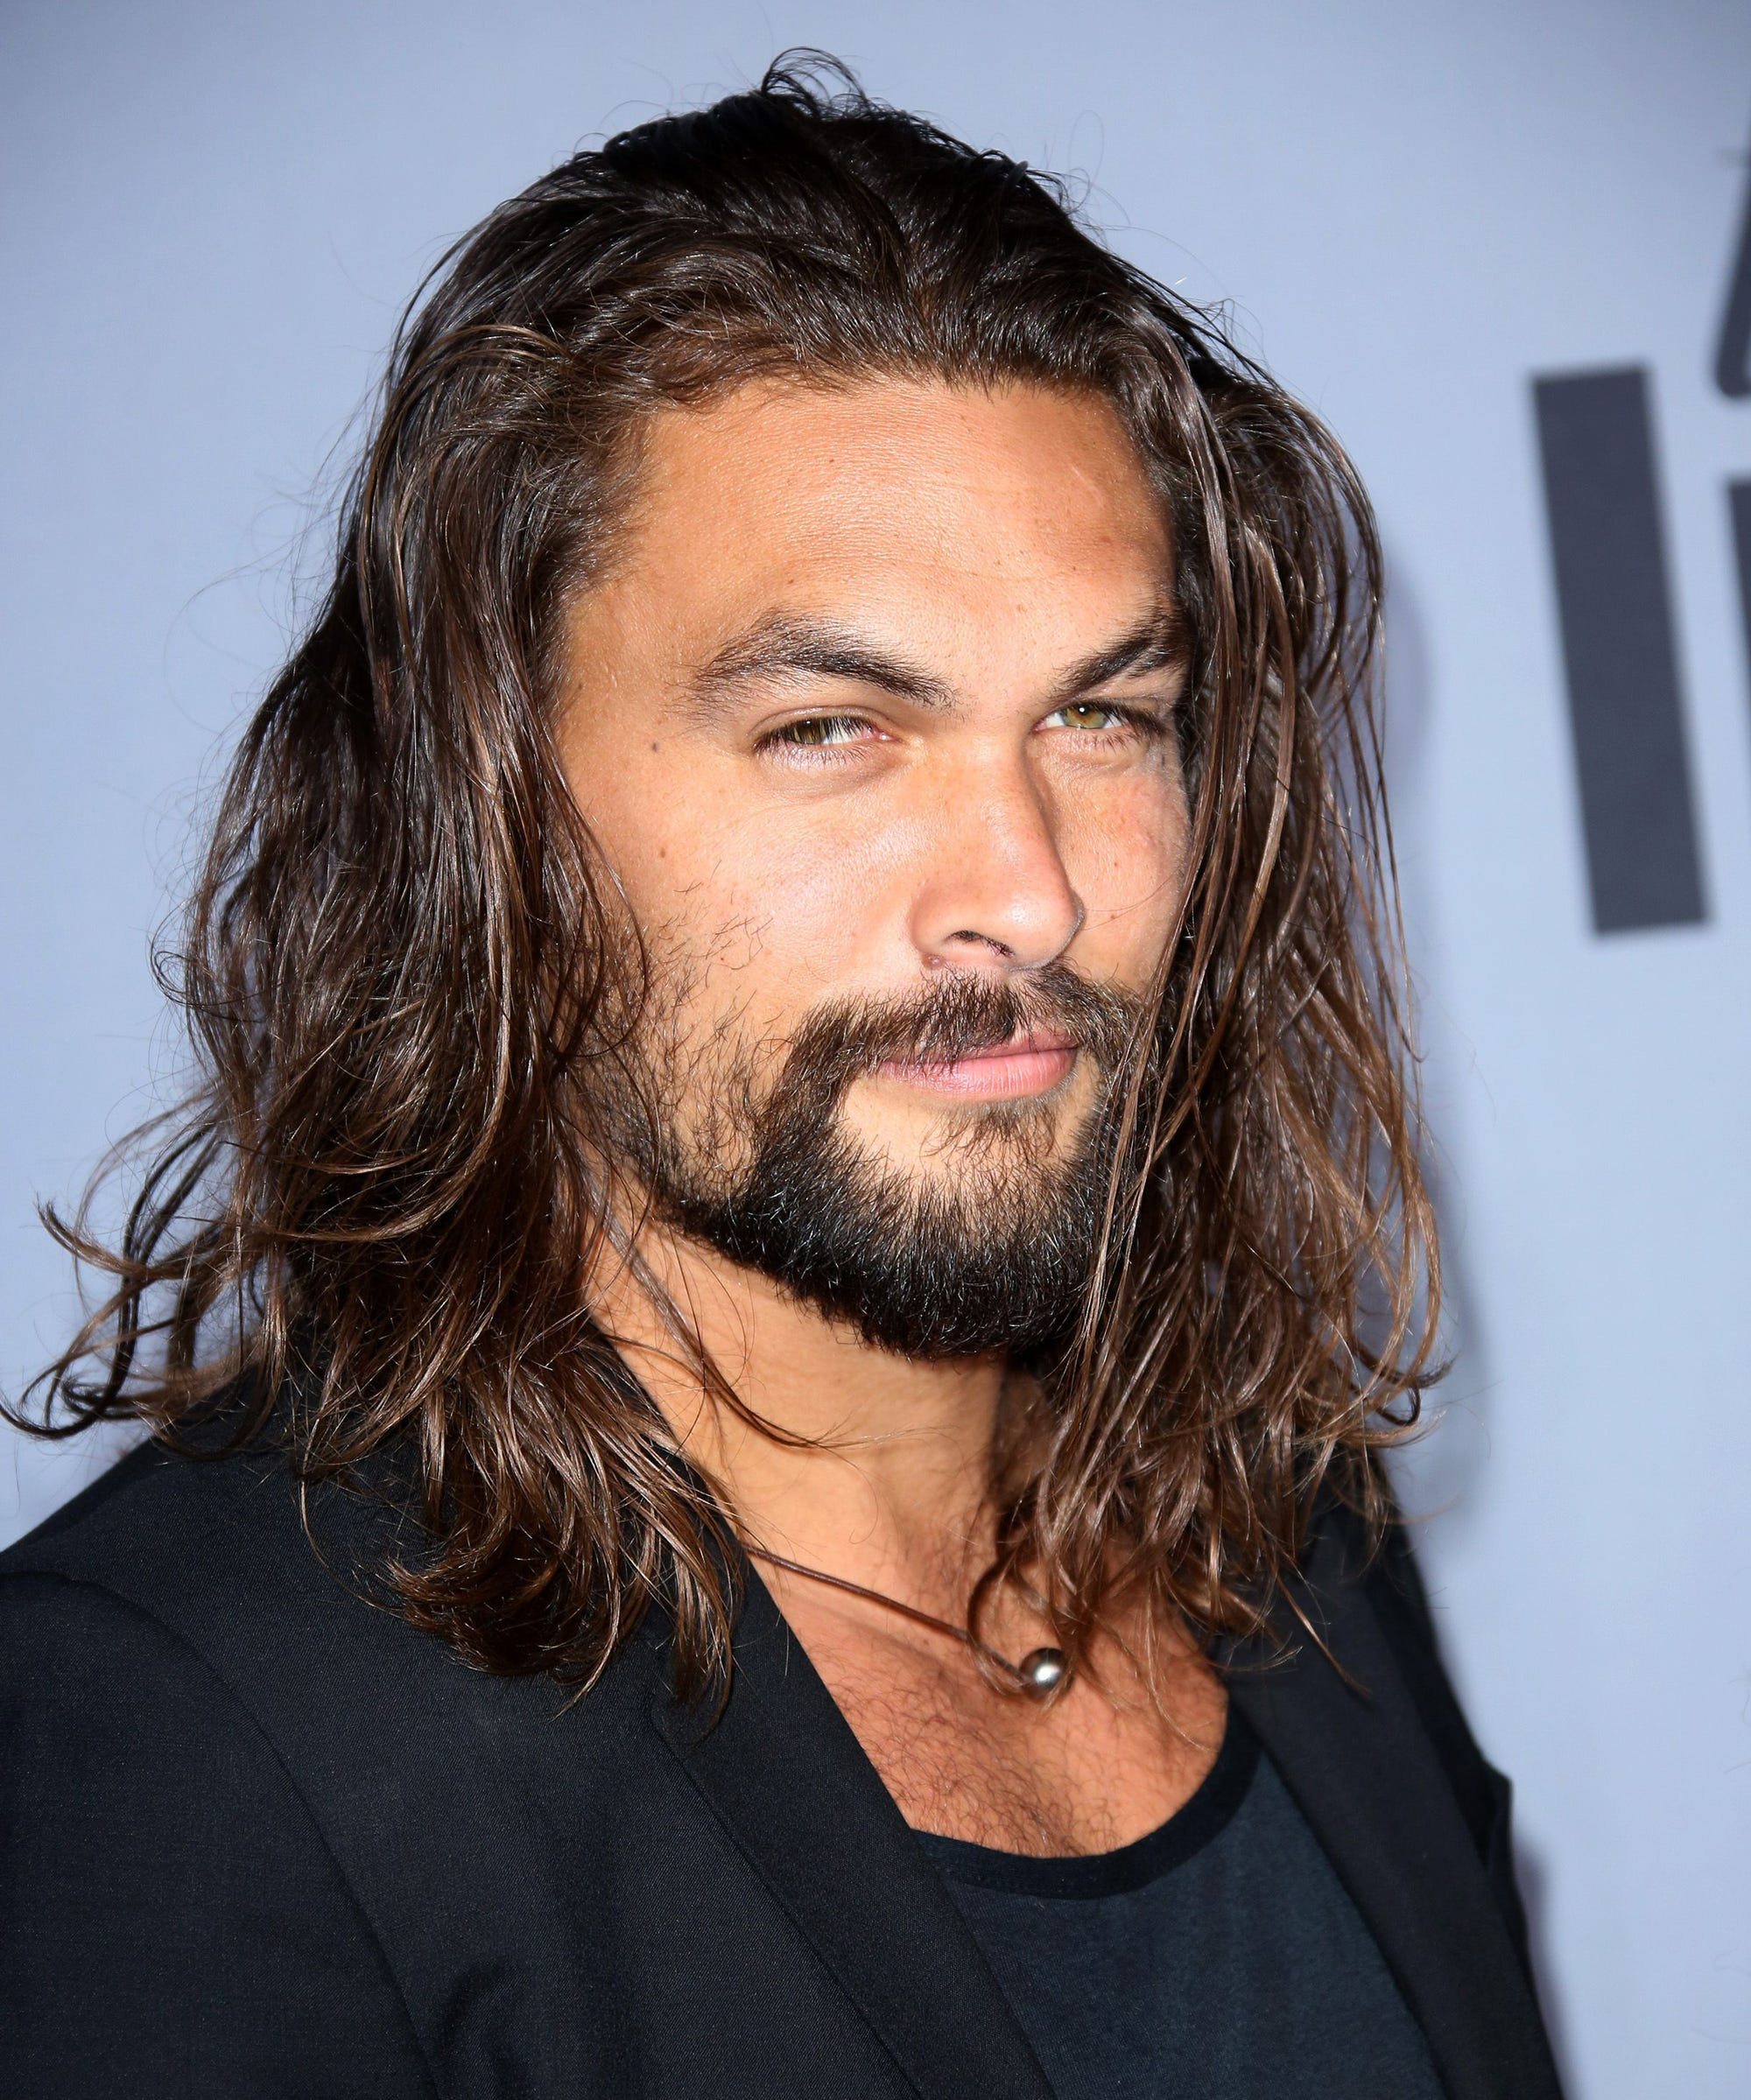 Jason Momoa Baywatch Role Pics Before Game Of ThronesJason Momoa